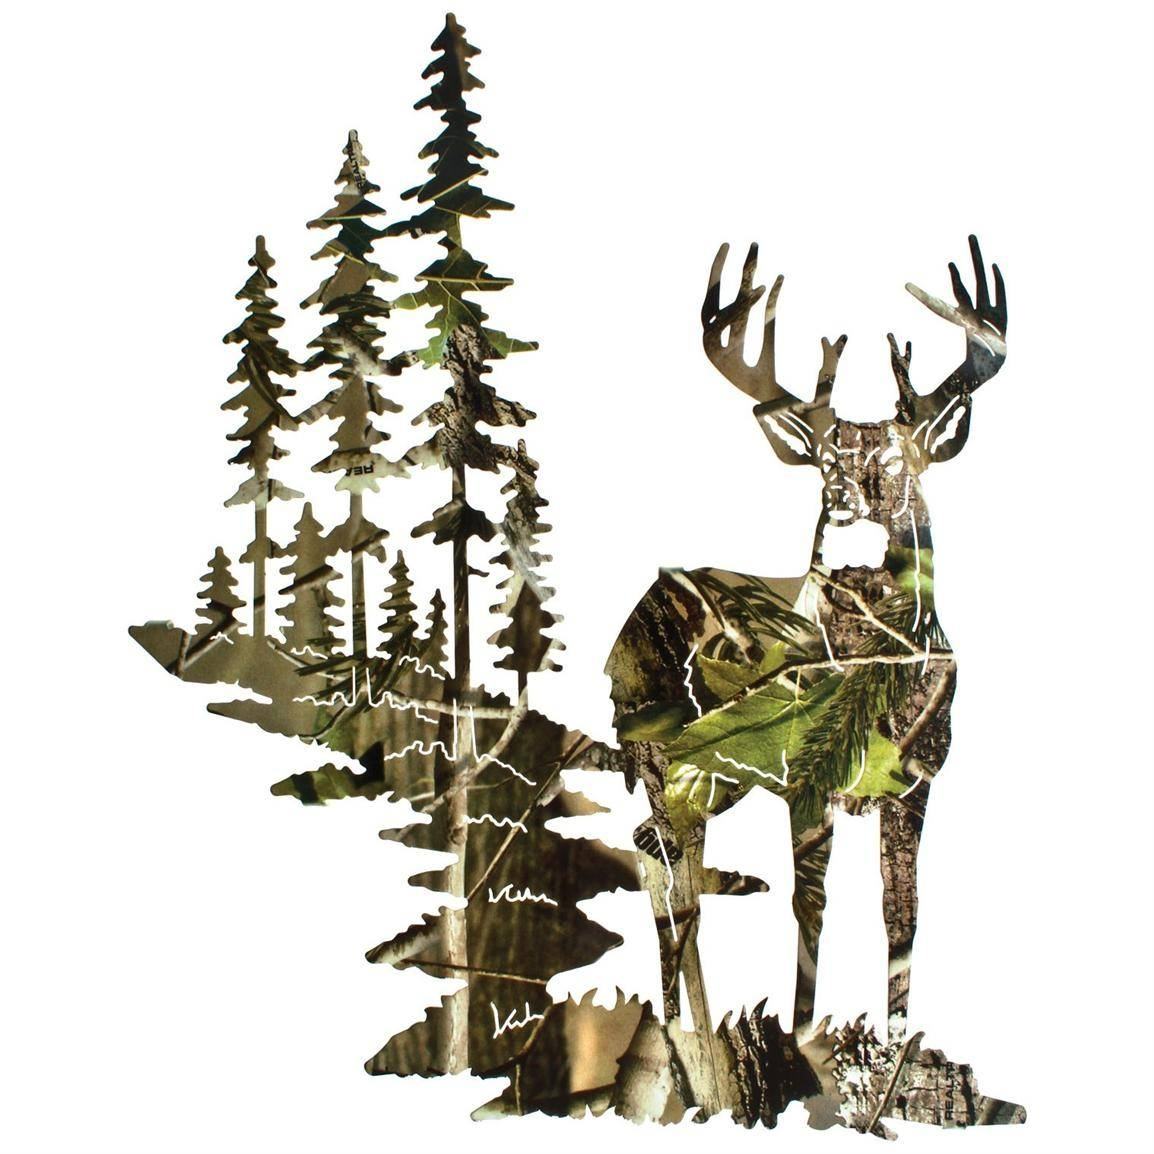 Camo Wall Decor Gallery – Home Wall Decoration Ideas Pertaining To Most Recent Camouflage Wall Art (View 9 of 20)